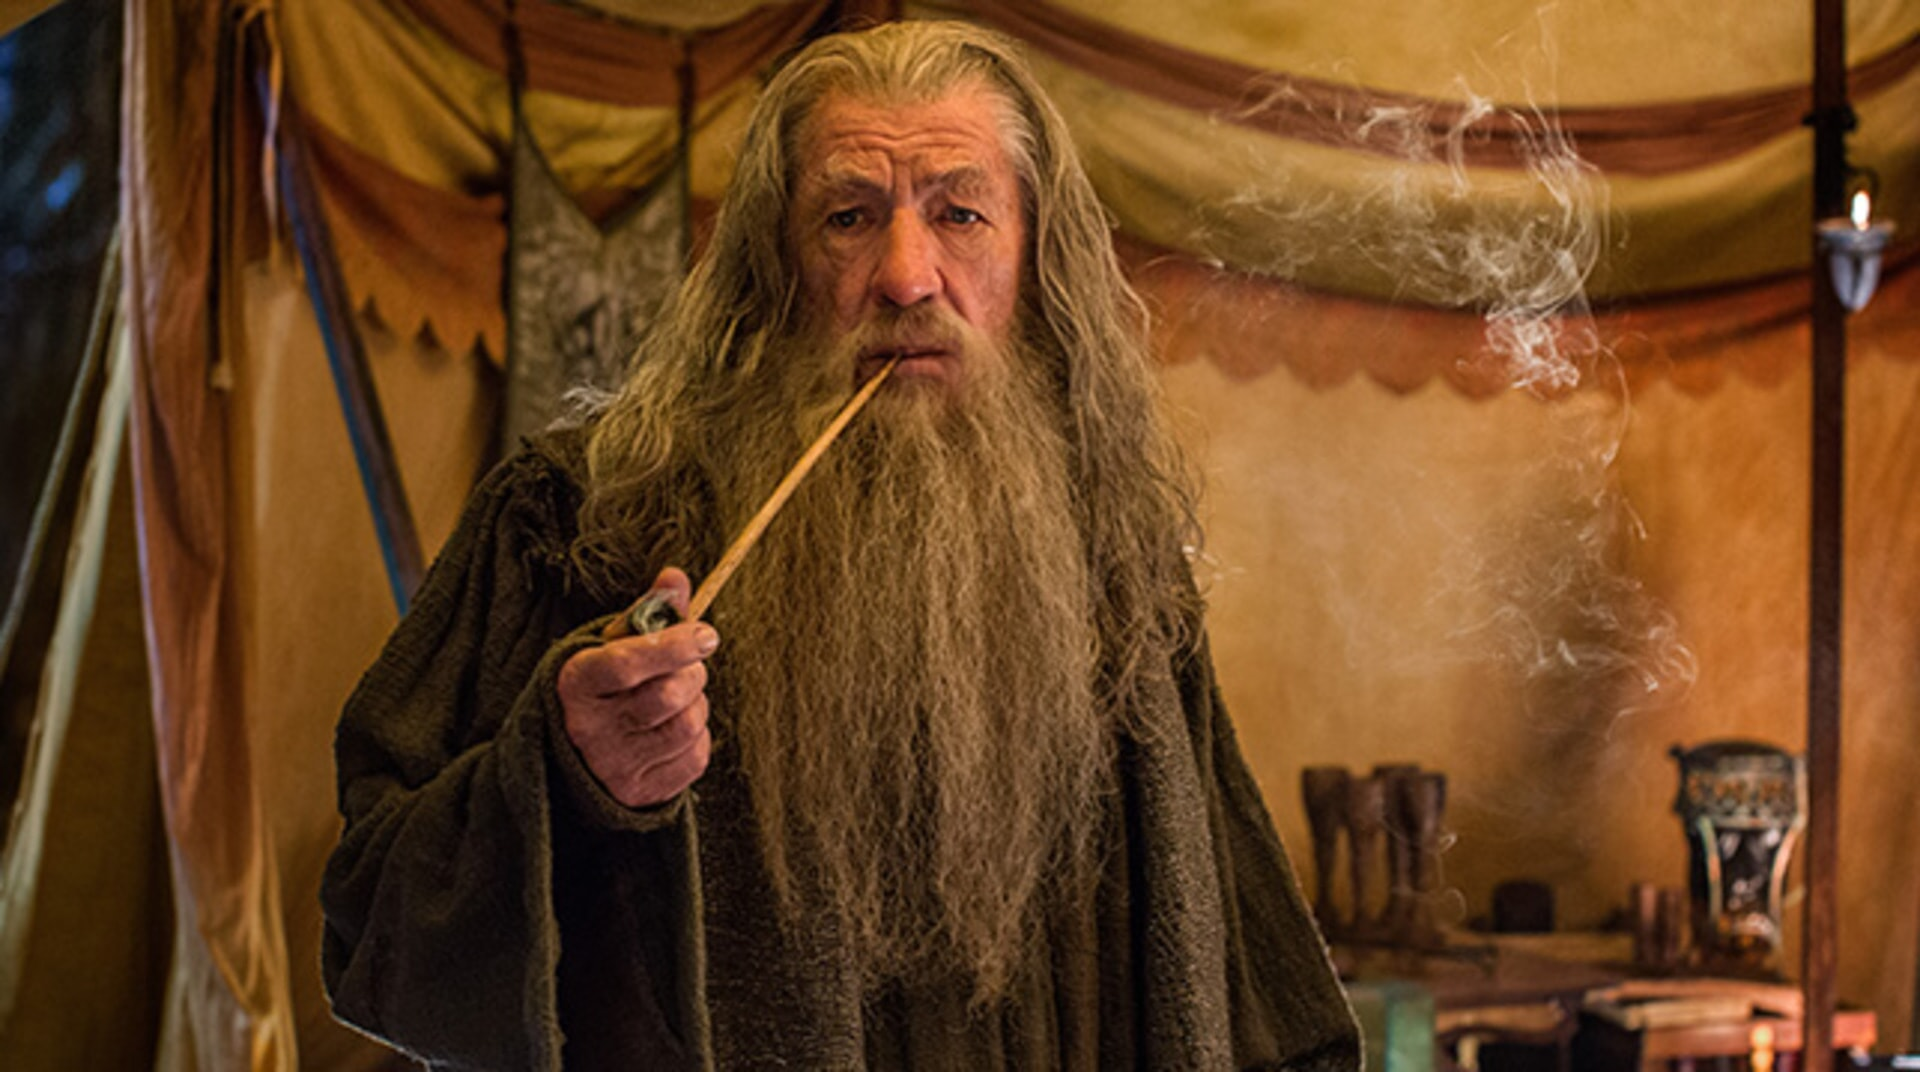 The Hobbit: The Battle of the Five Armies - Image 8